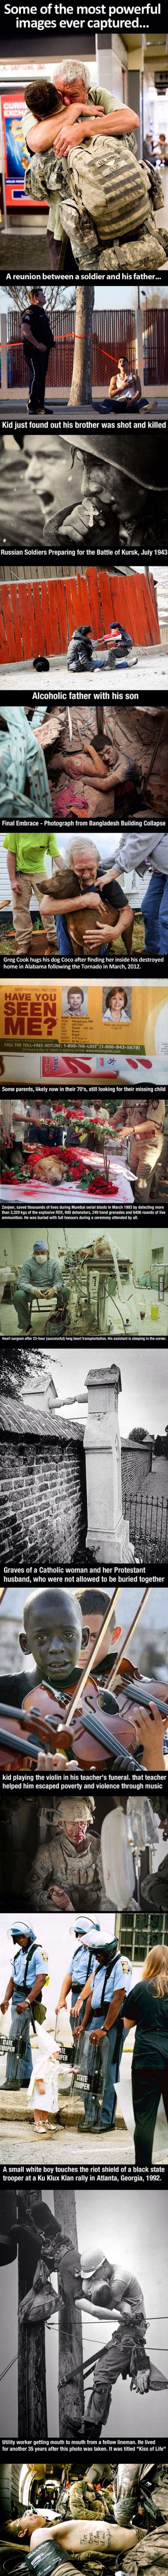 15 Powerful Images You Must See